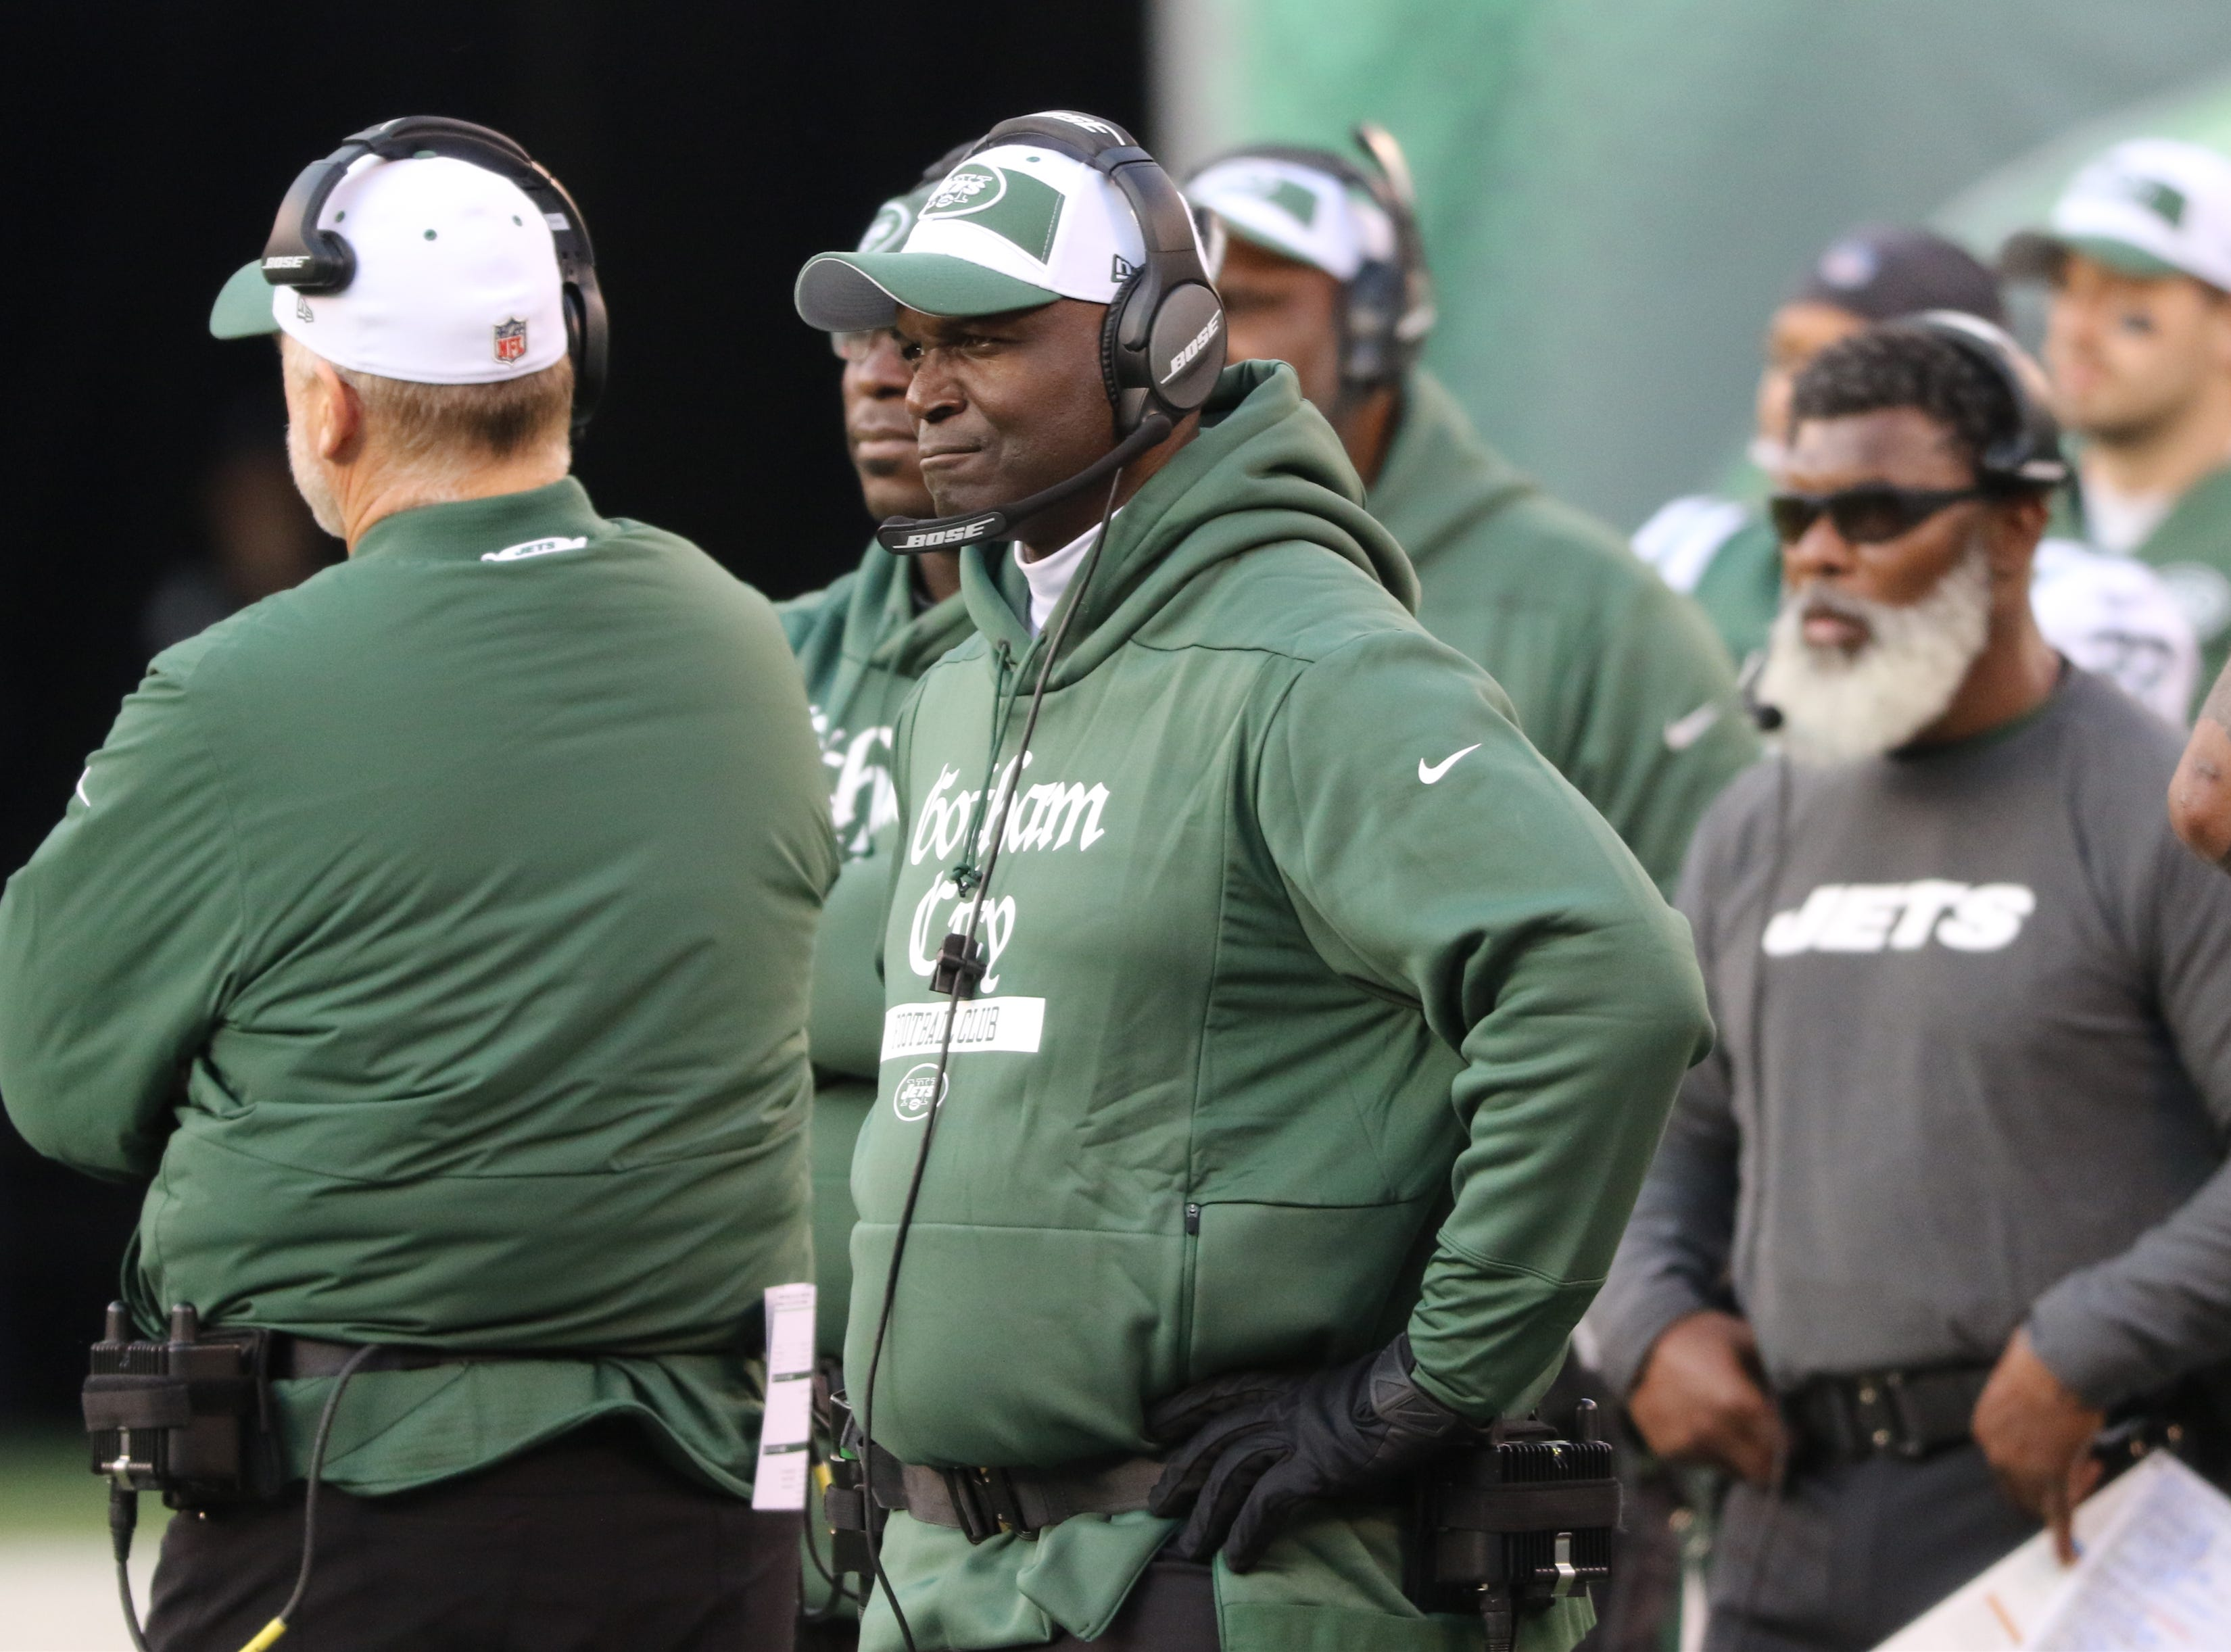 Jets Head Coach, Todd Bowles watches as the Jets let another game slip away in the second half. Sunday, November 25, 2018